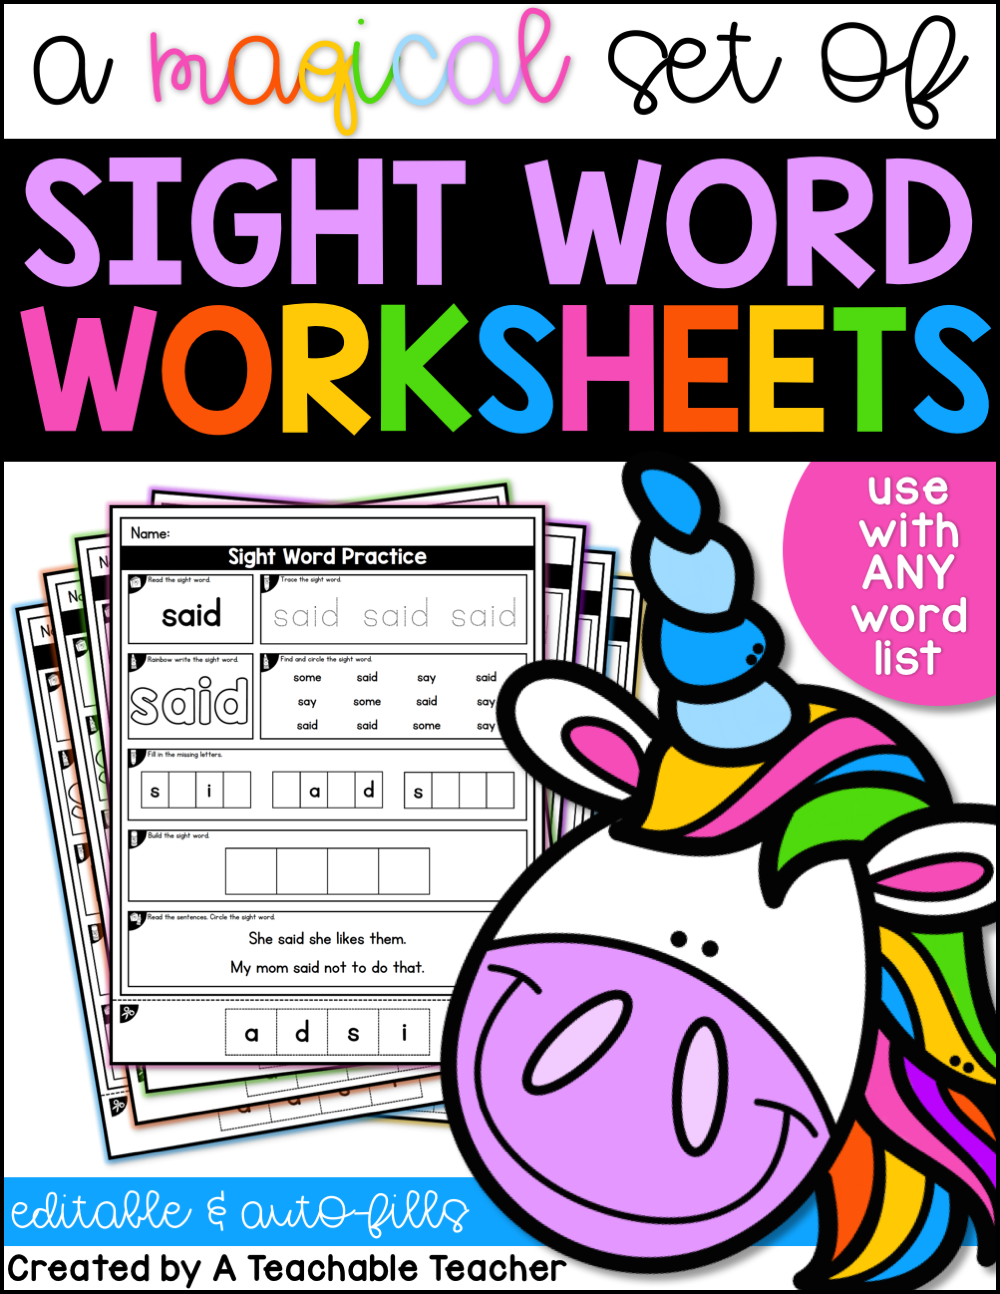 - Editable Sight Word Worksheets - A Teachable Teacher